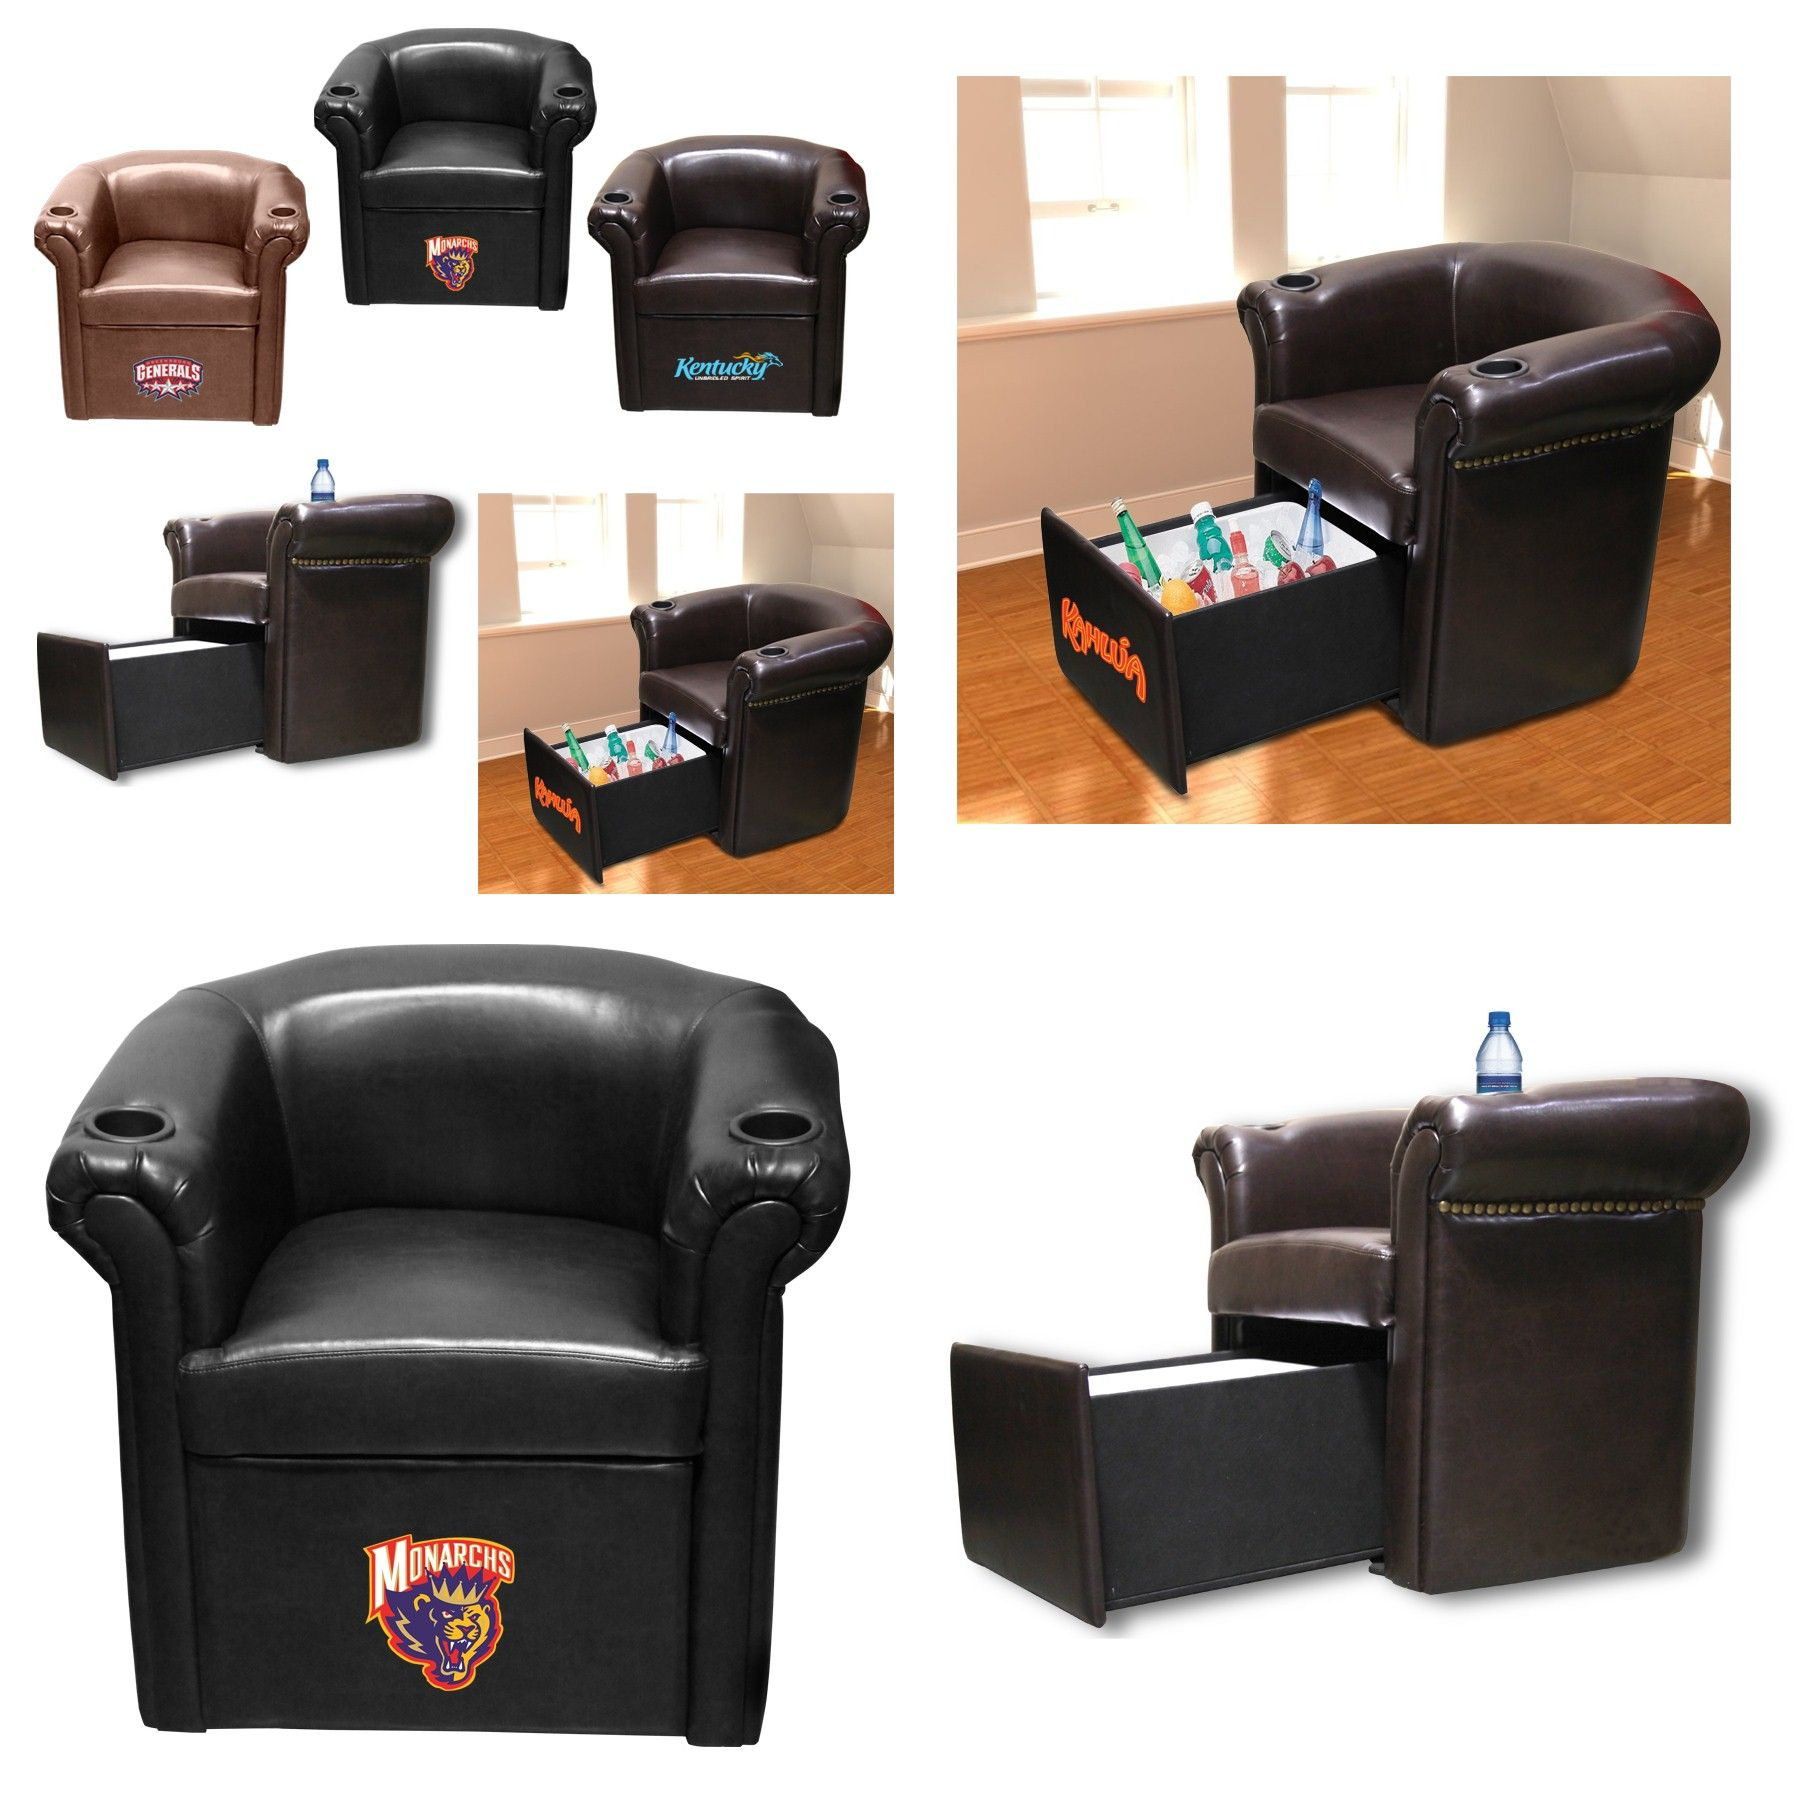 Cooler Chairs   Man Cave APPROVED!